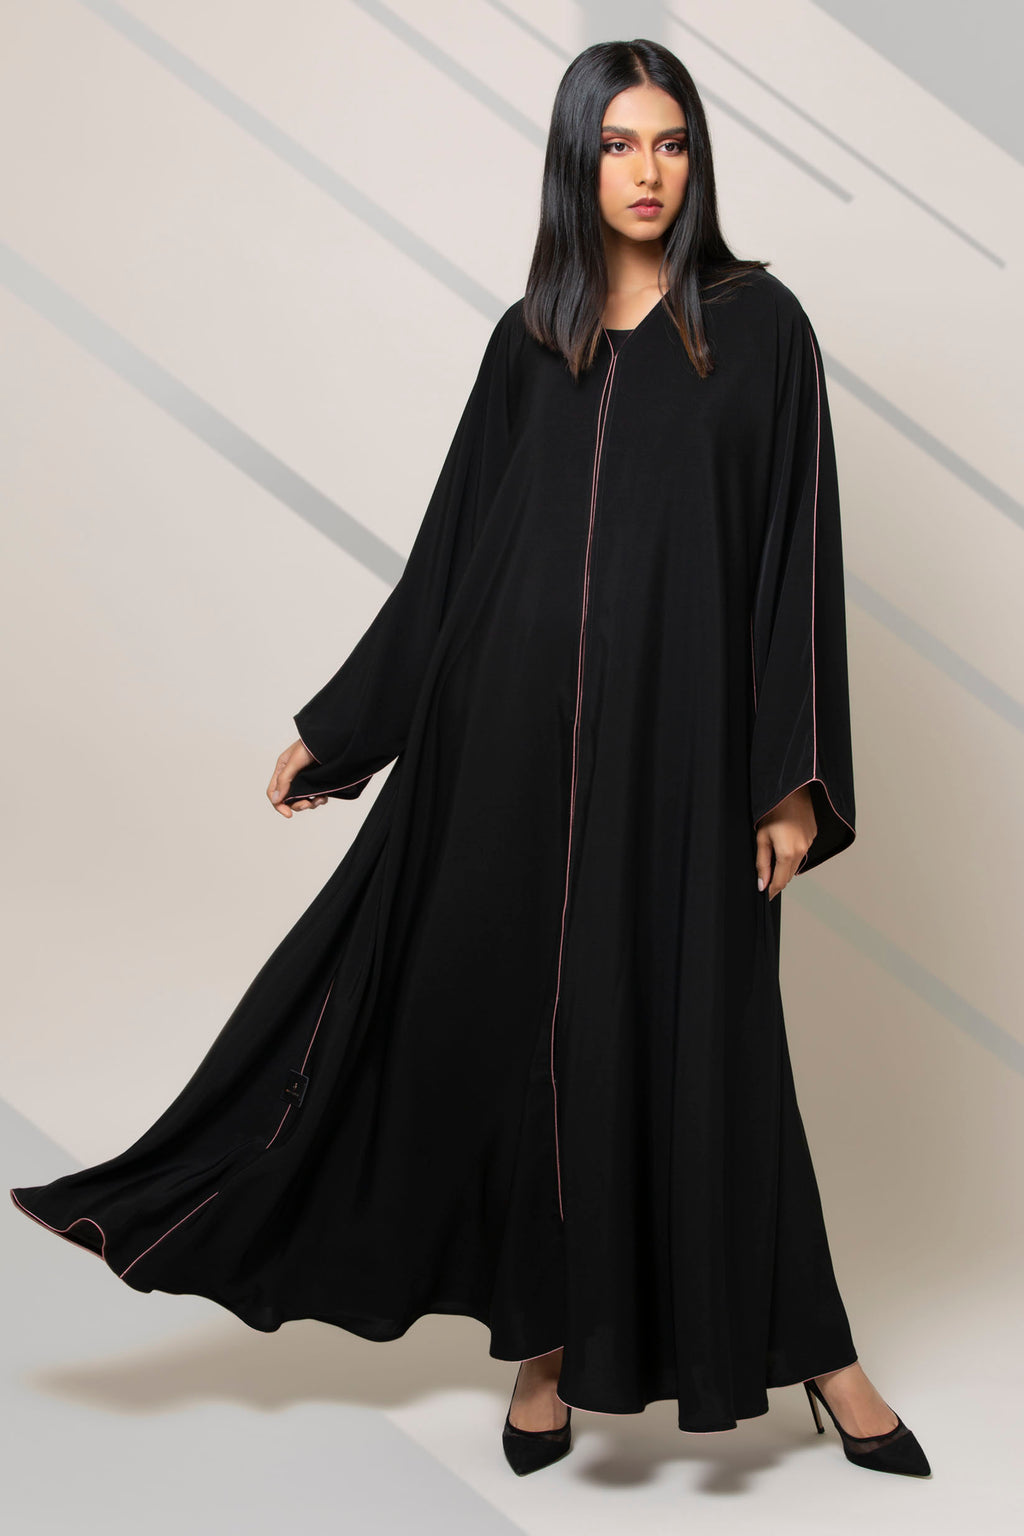 BLACK BREAM HIGHLIGHT PLEATED SALOAN ABAYA